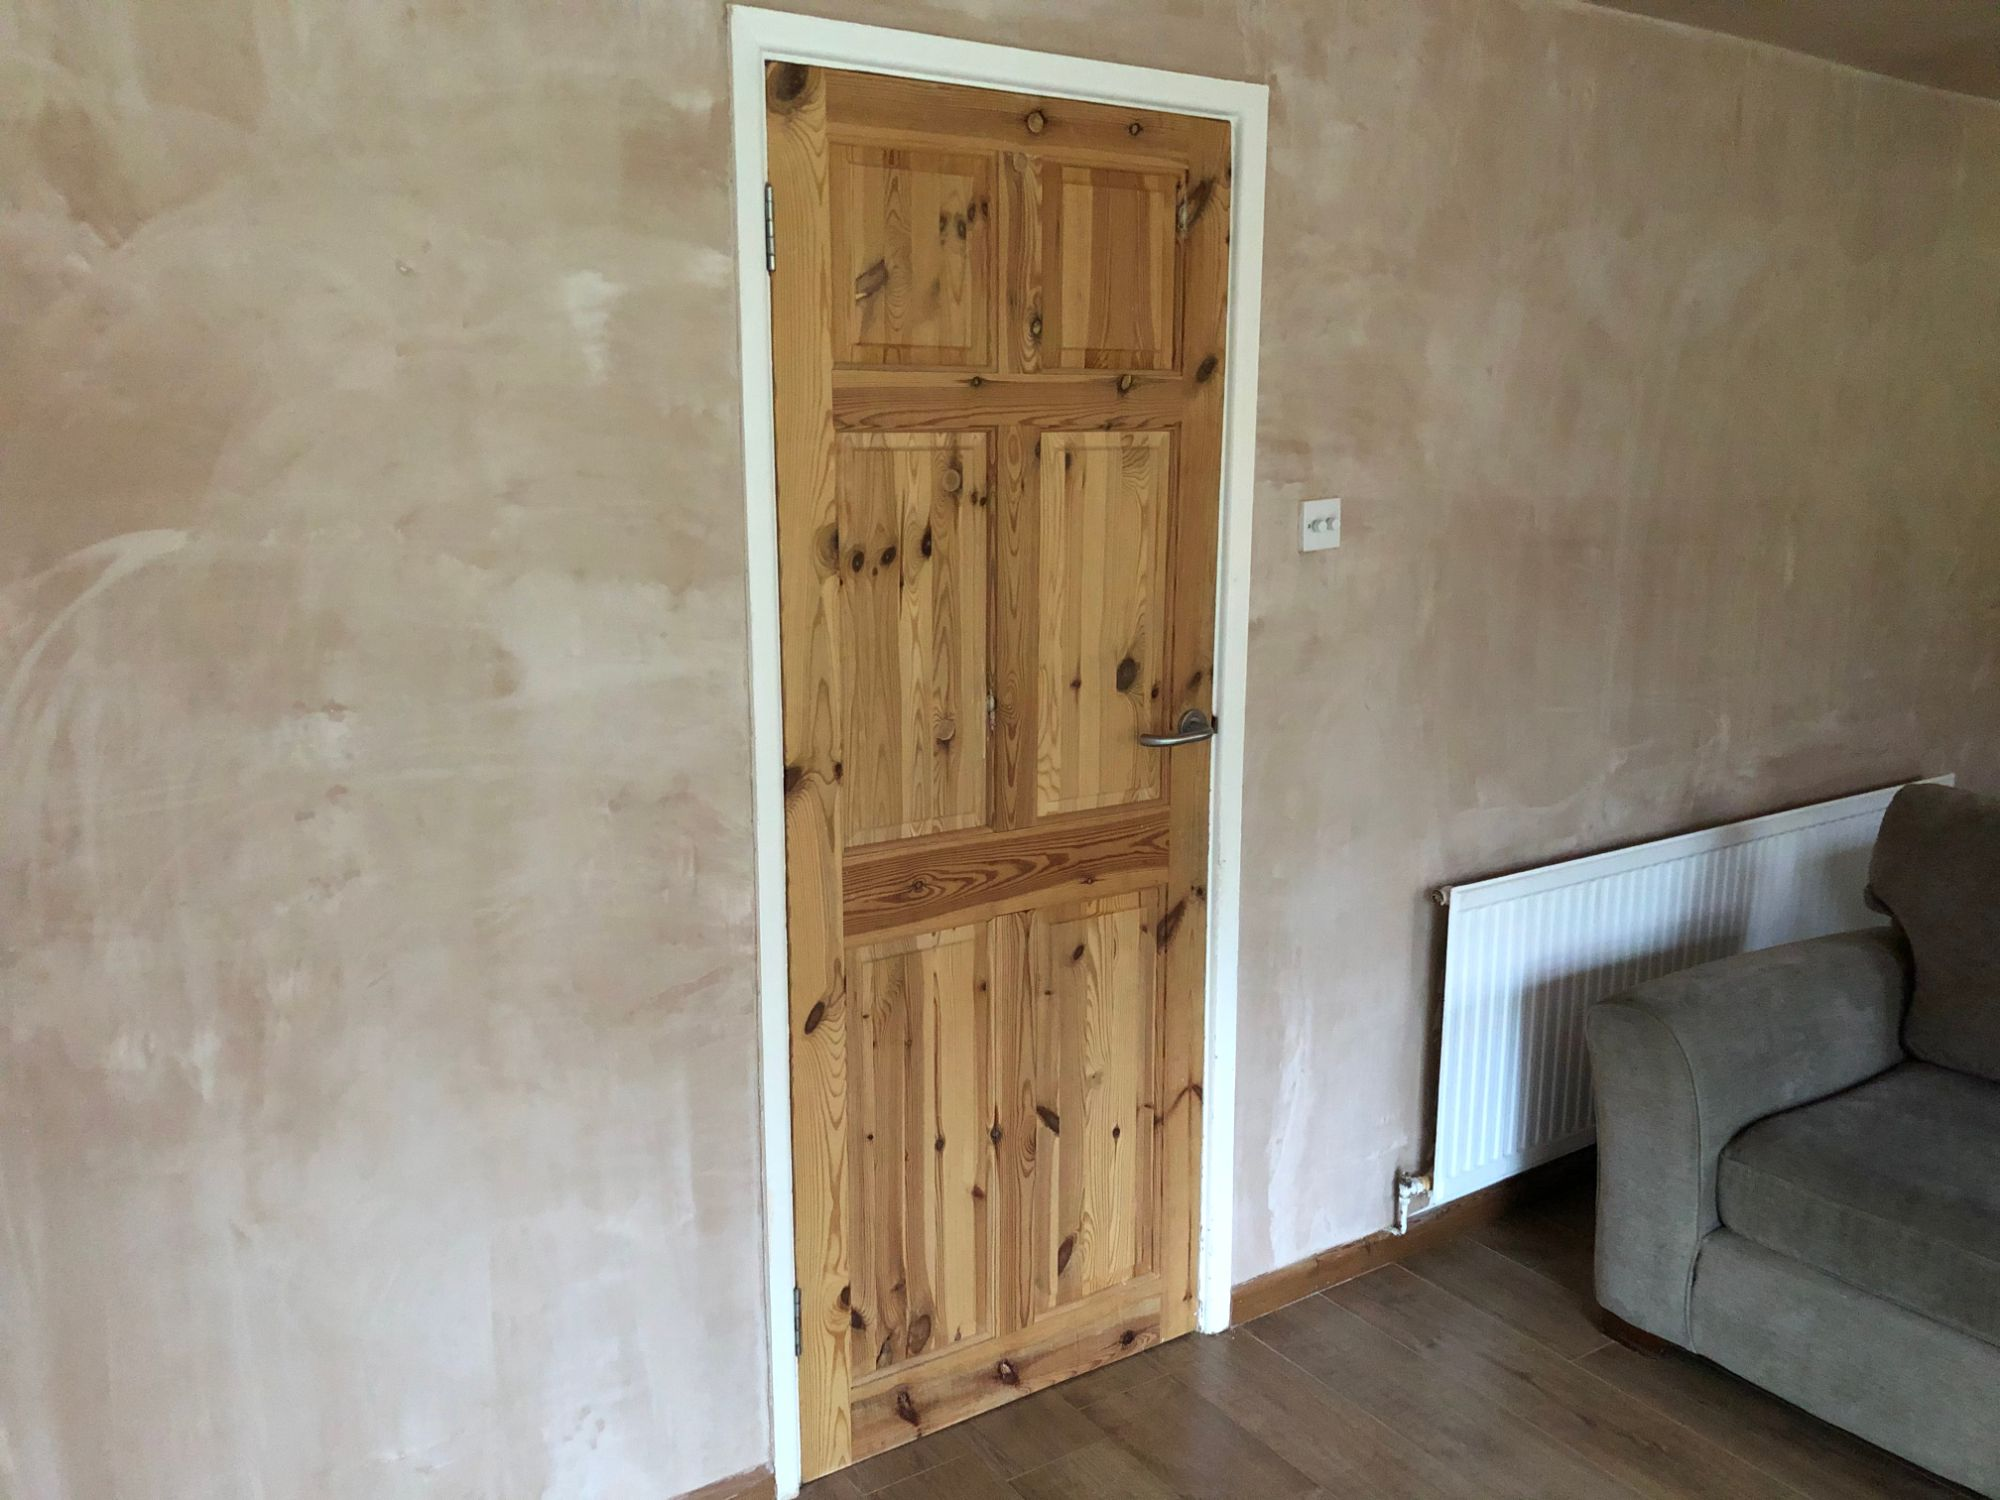 Free stock photo plaster wall replastering architrave pine door renovate house